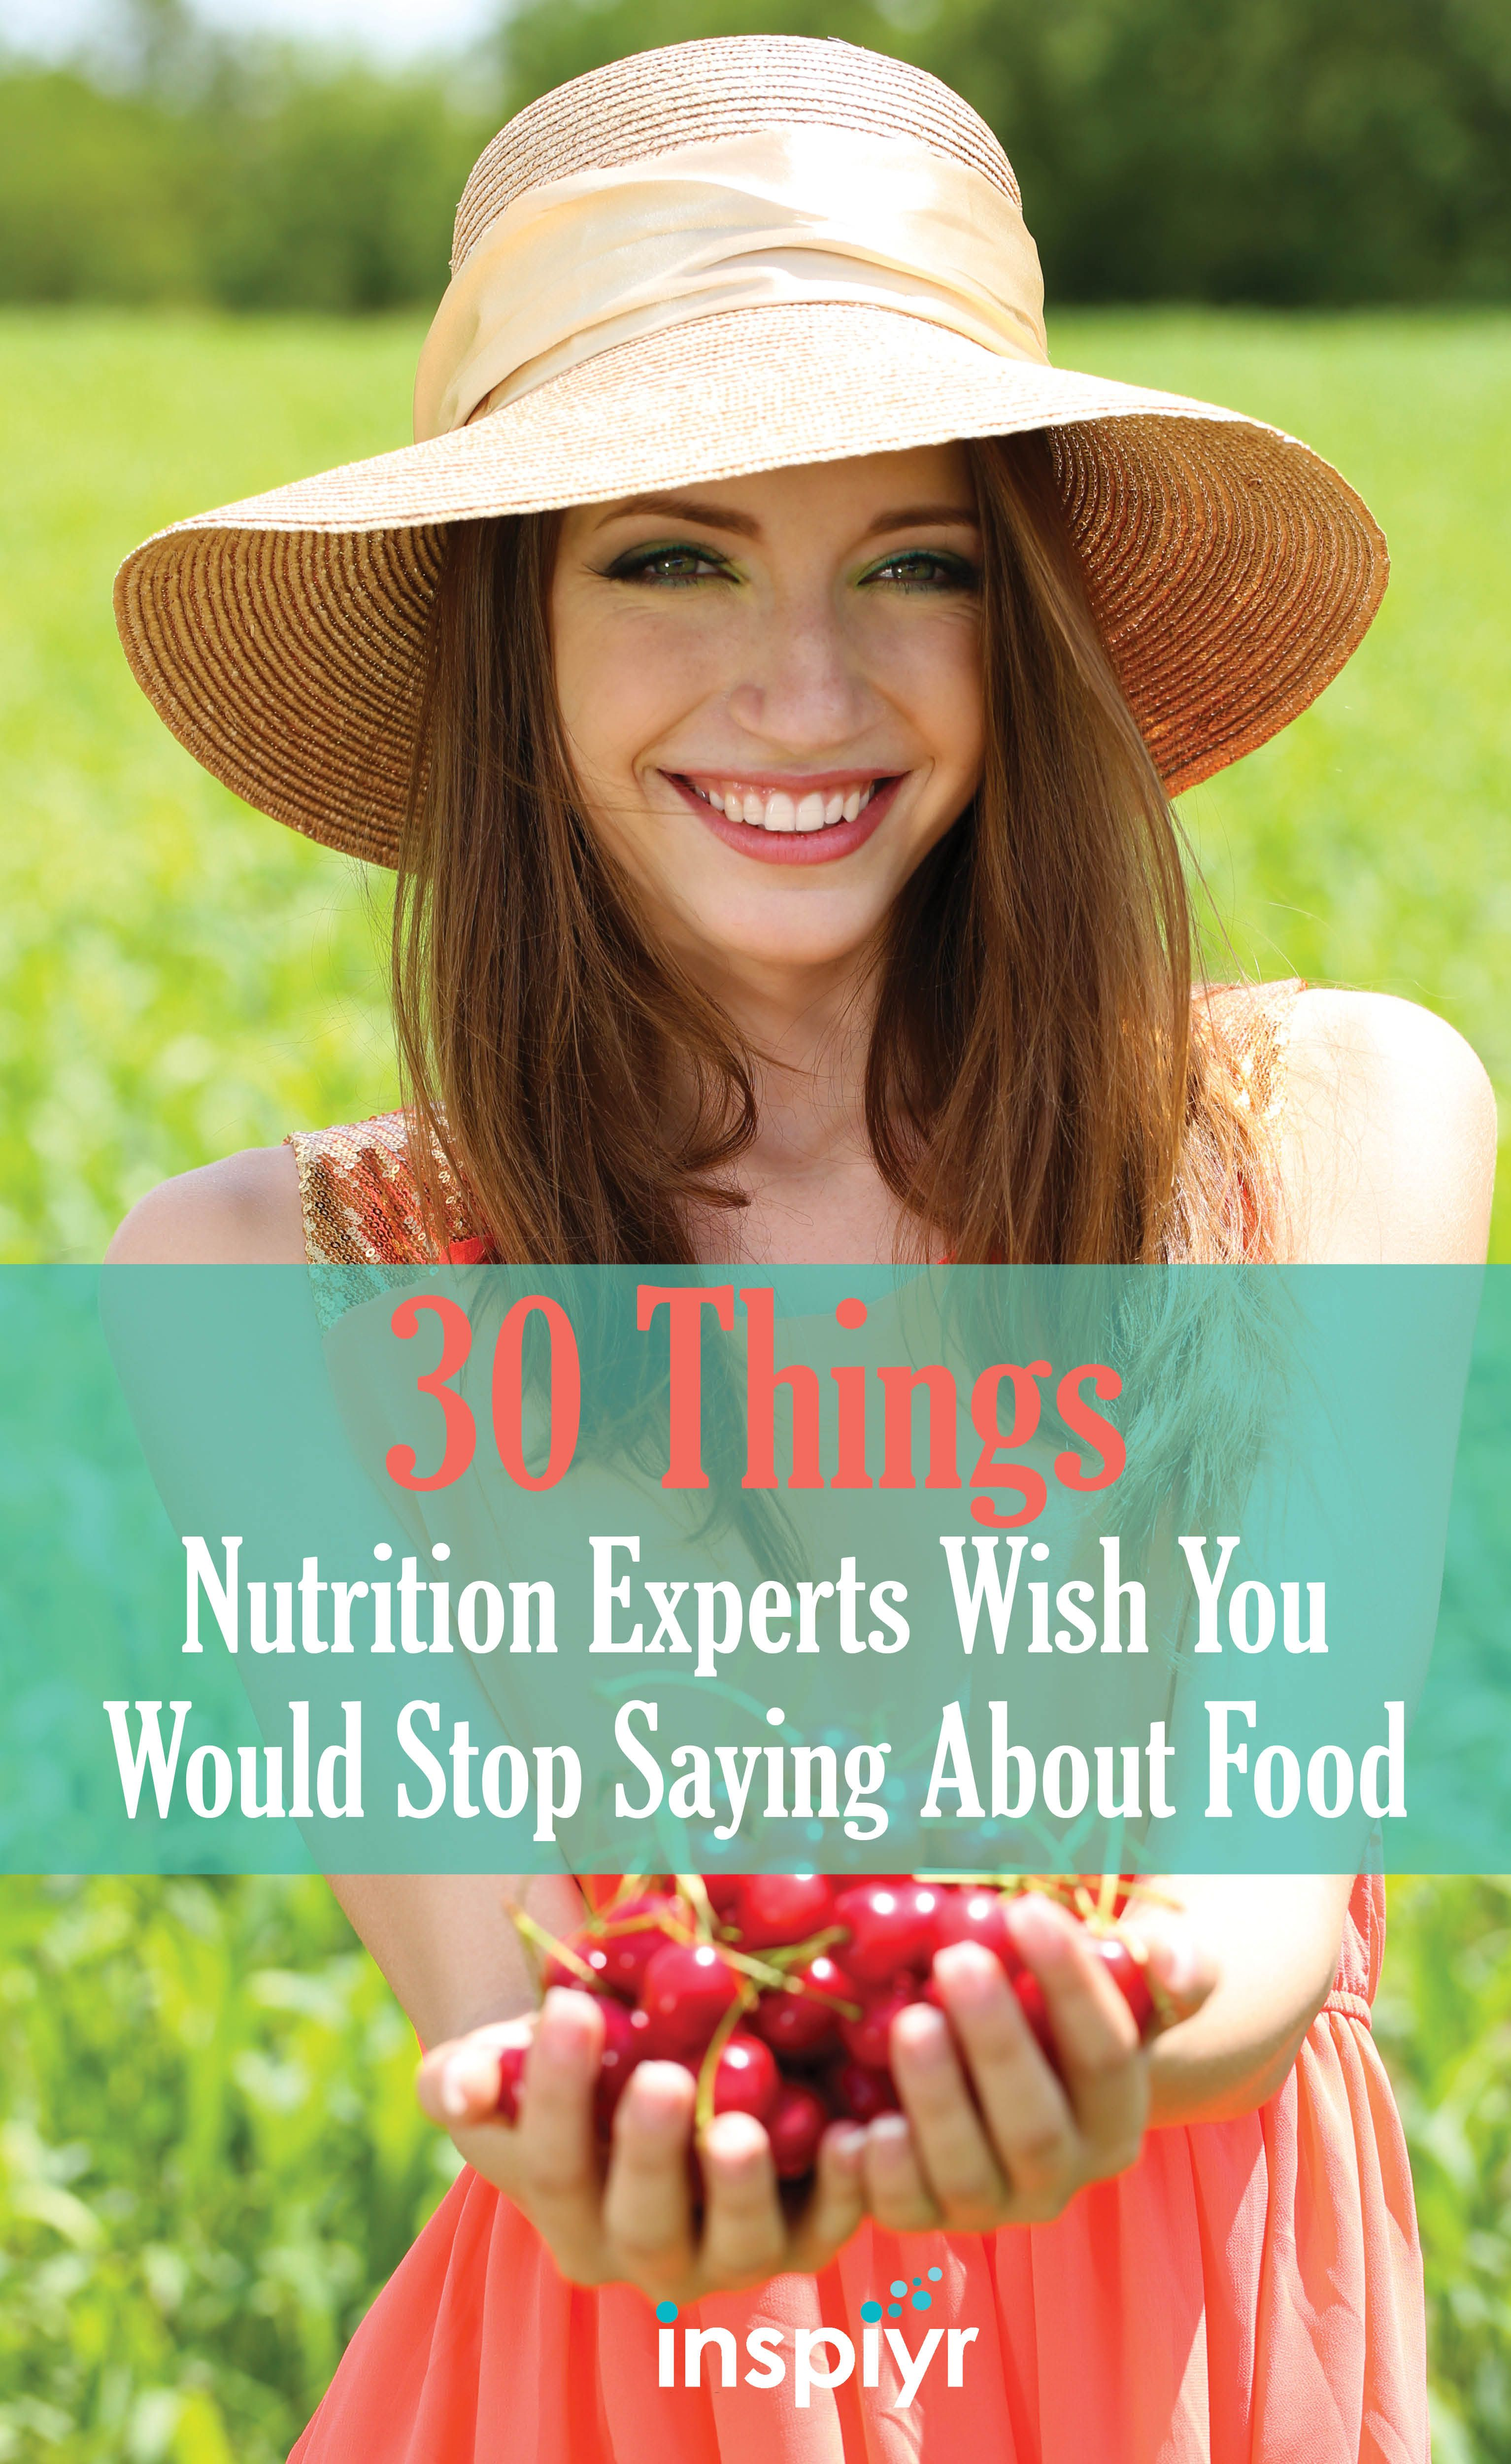 30 Things Nutrition Experts Wish You Would Stop Saying About Food by Inspiyr.com // The word nutrition can be a tricky thing to understand. Luckily these nutritionists are here to tell you how to eat healthy and treat your body right! #Inspiyr